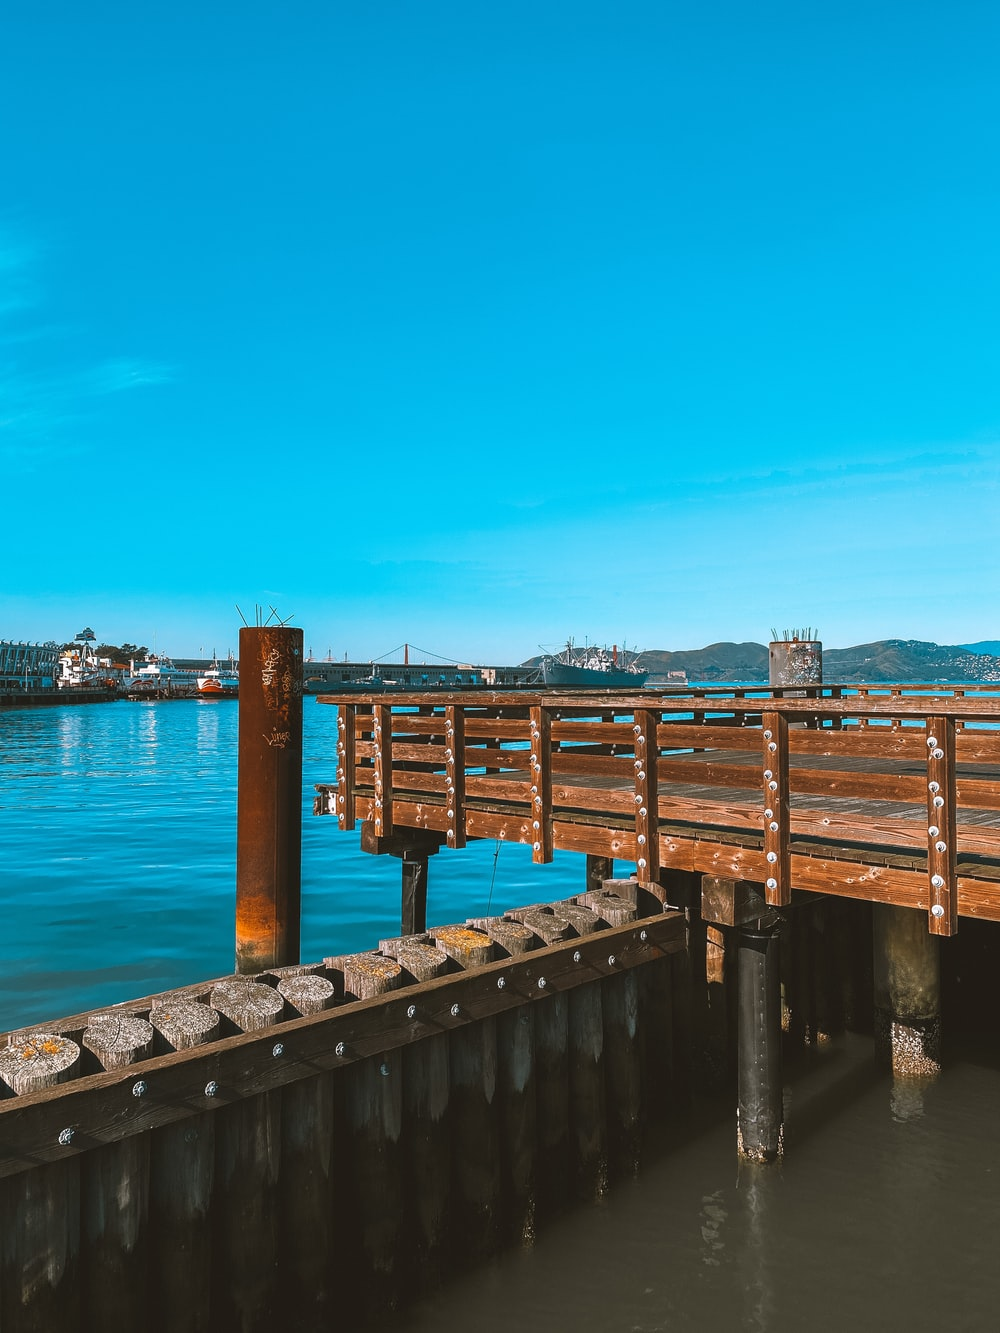 brown wooden dock on blue sea under blue sky during daytime